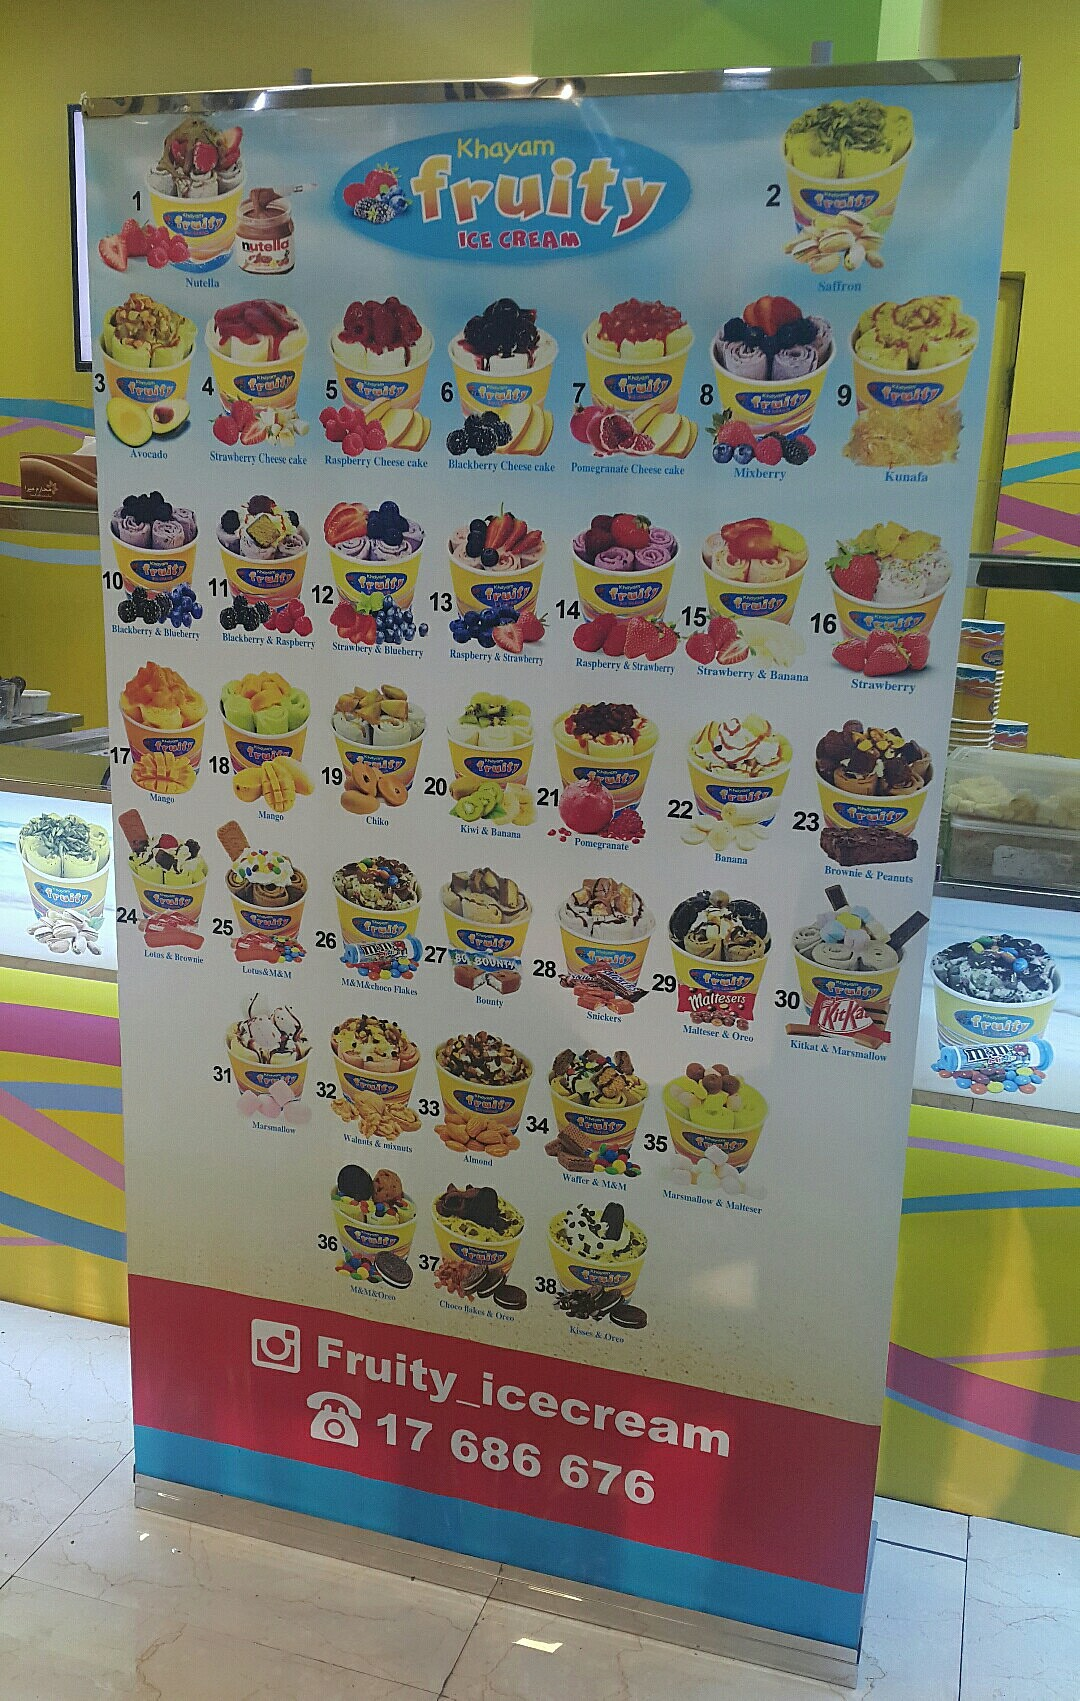 #icecream different flavours @ khayam Fruity Icecream - Bahrain